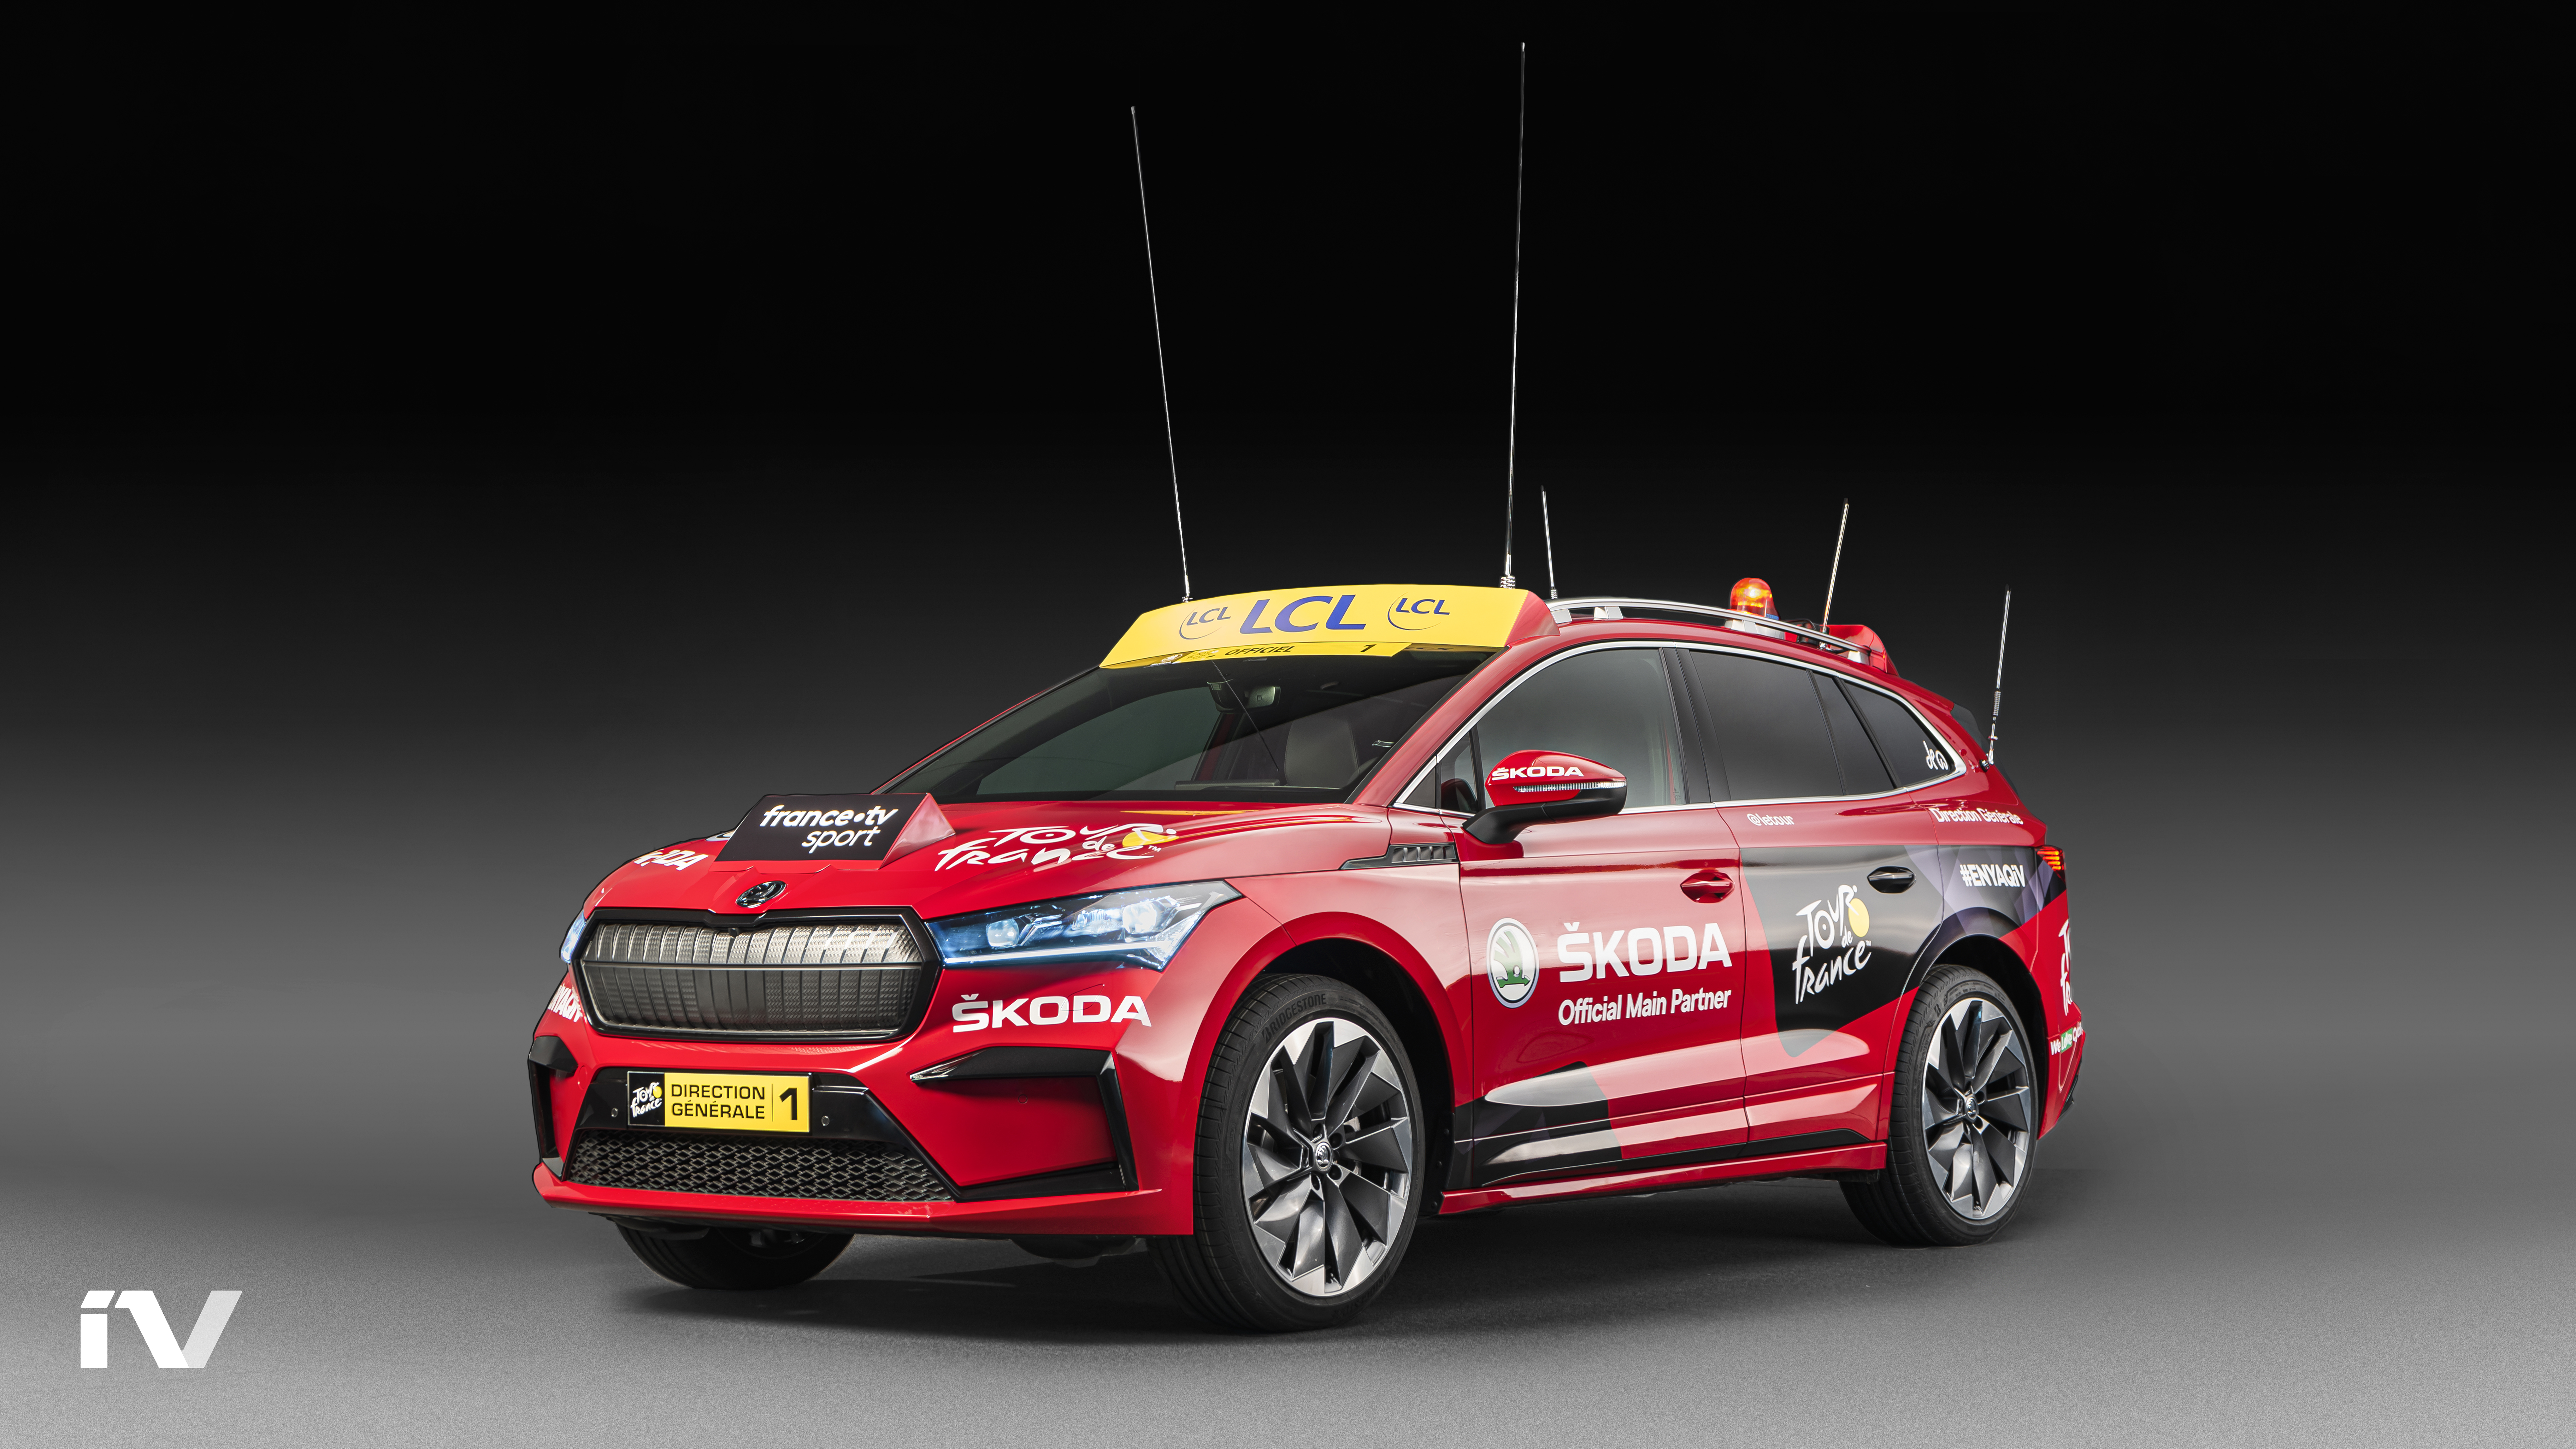 SKODA ENYAQ iV makes its debut as the lead vehicle in the Tour de France - Image 8